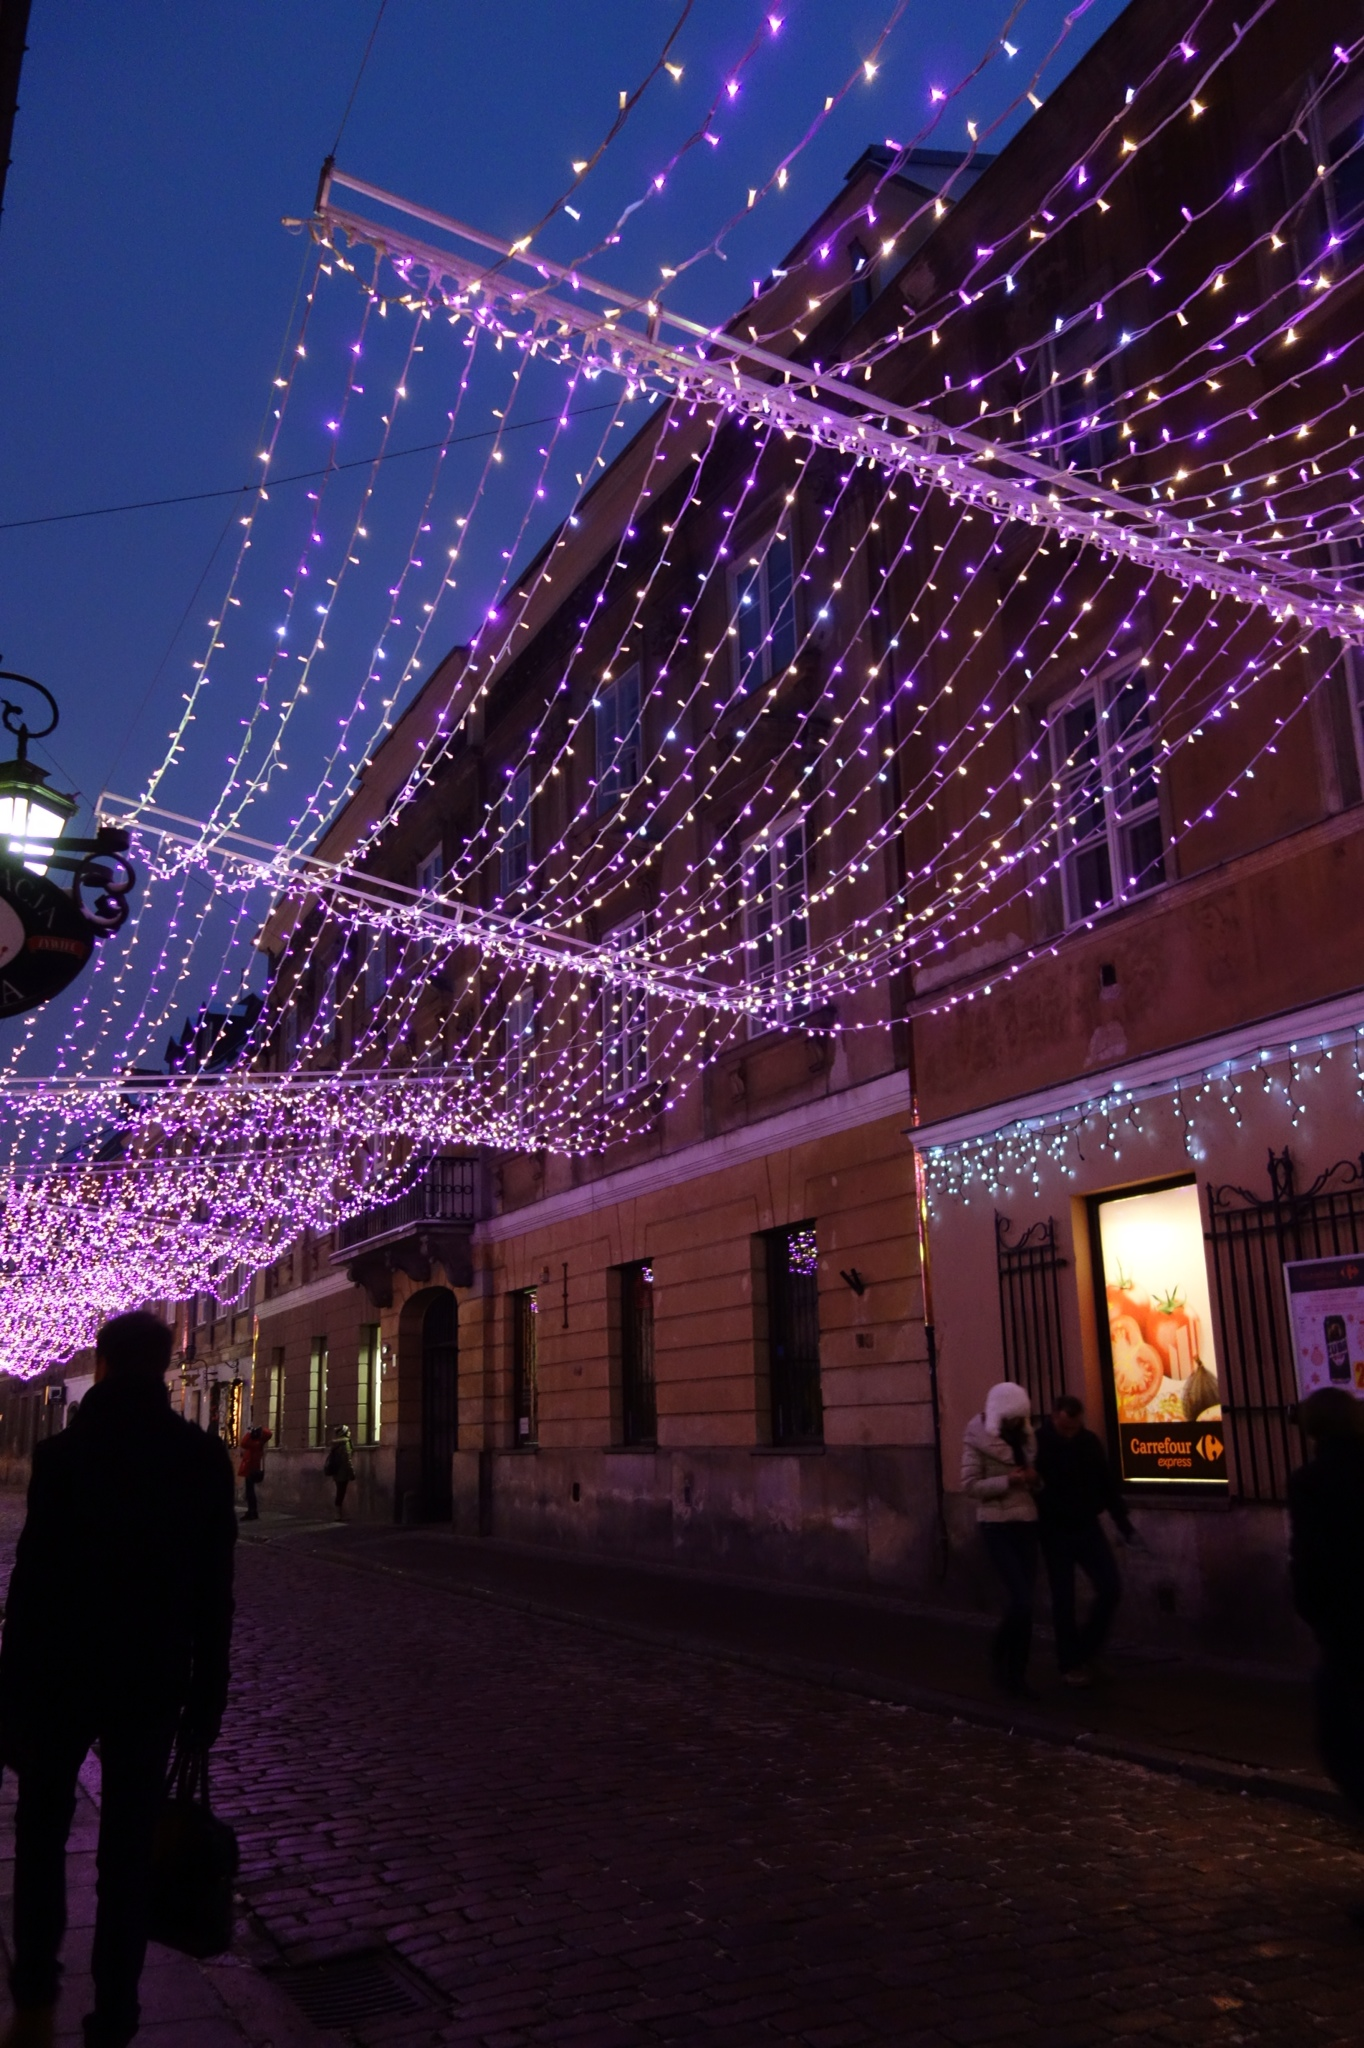 The Need For Ceiling Christmas Lights